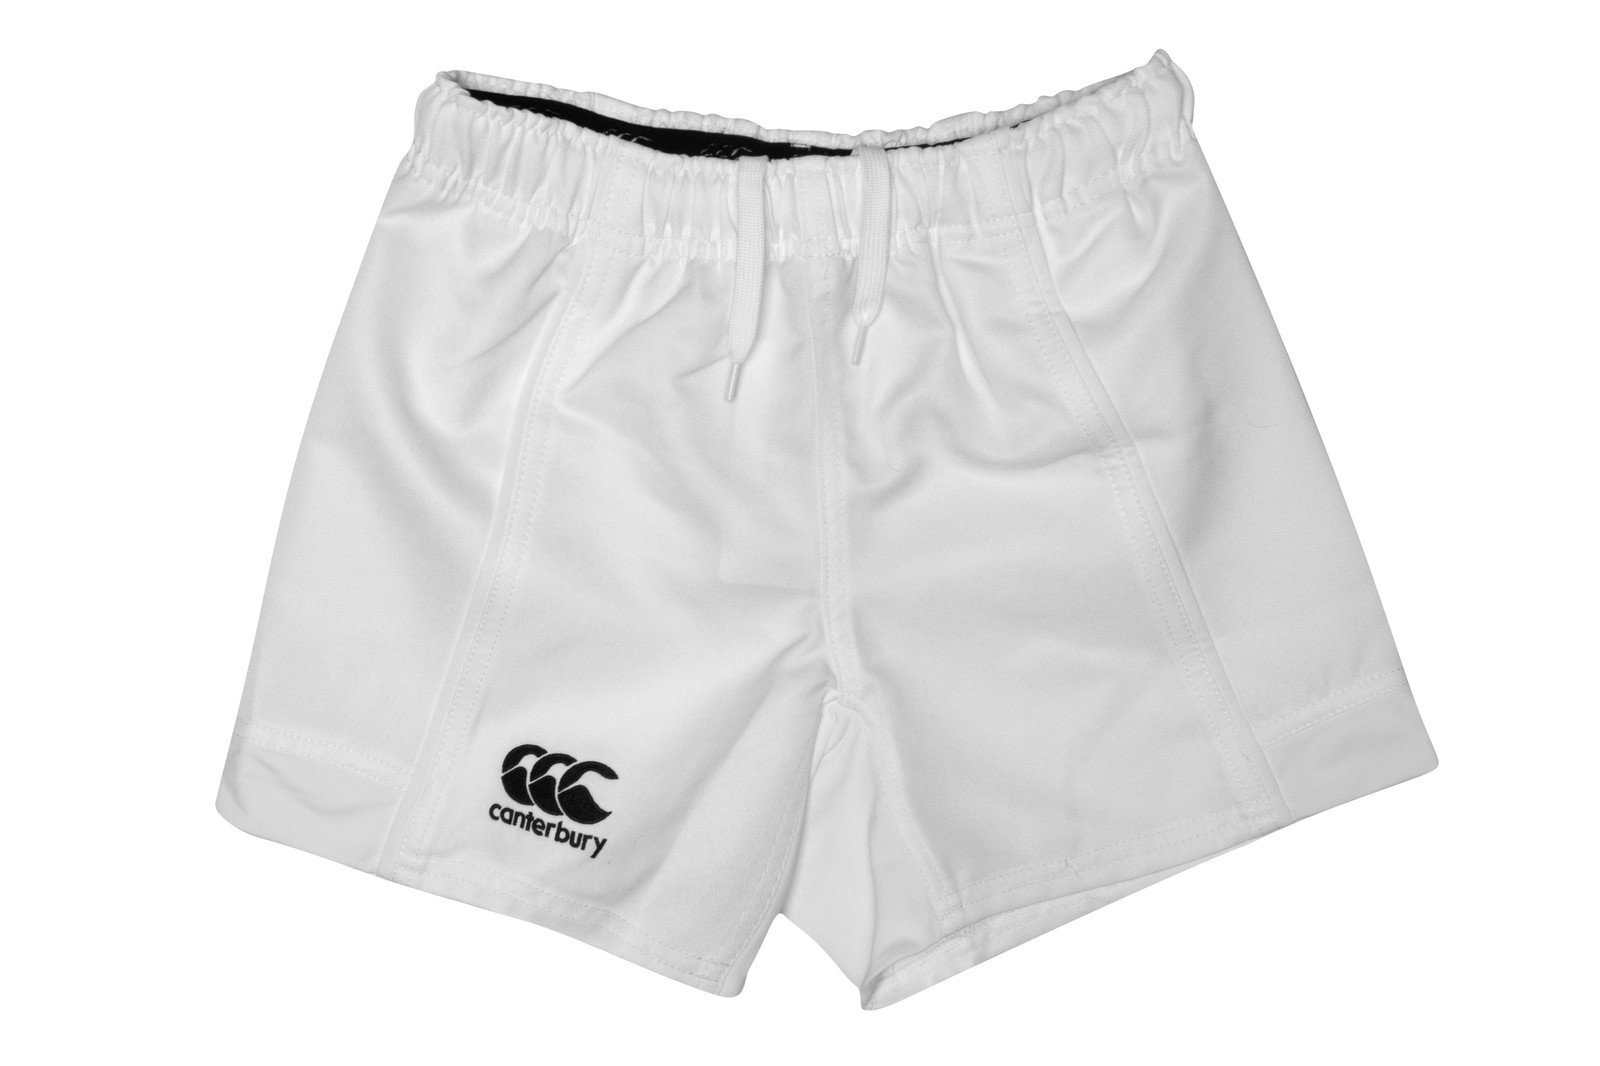 Image of Advantage Kids Rugby Shorts